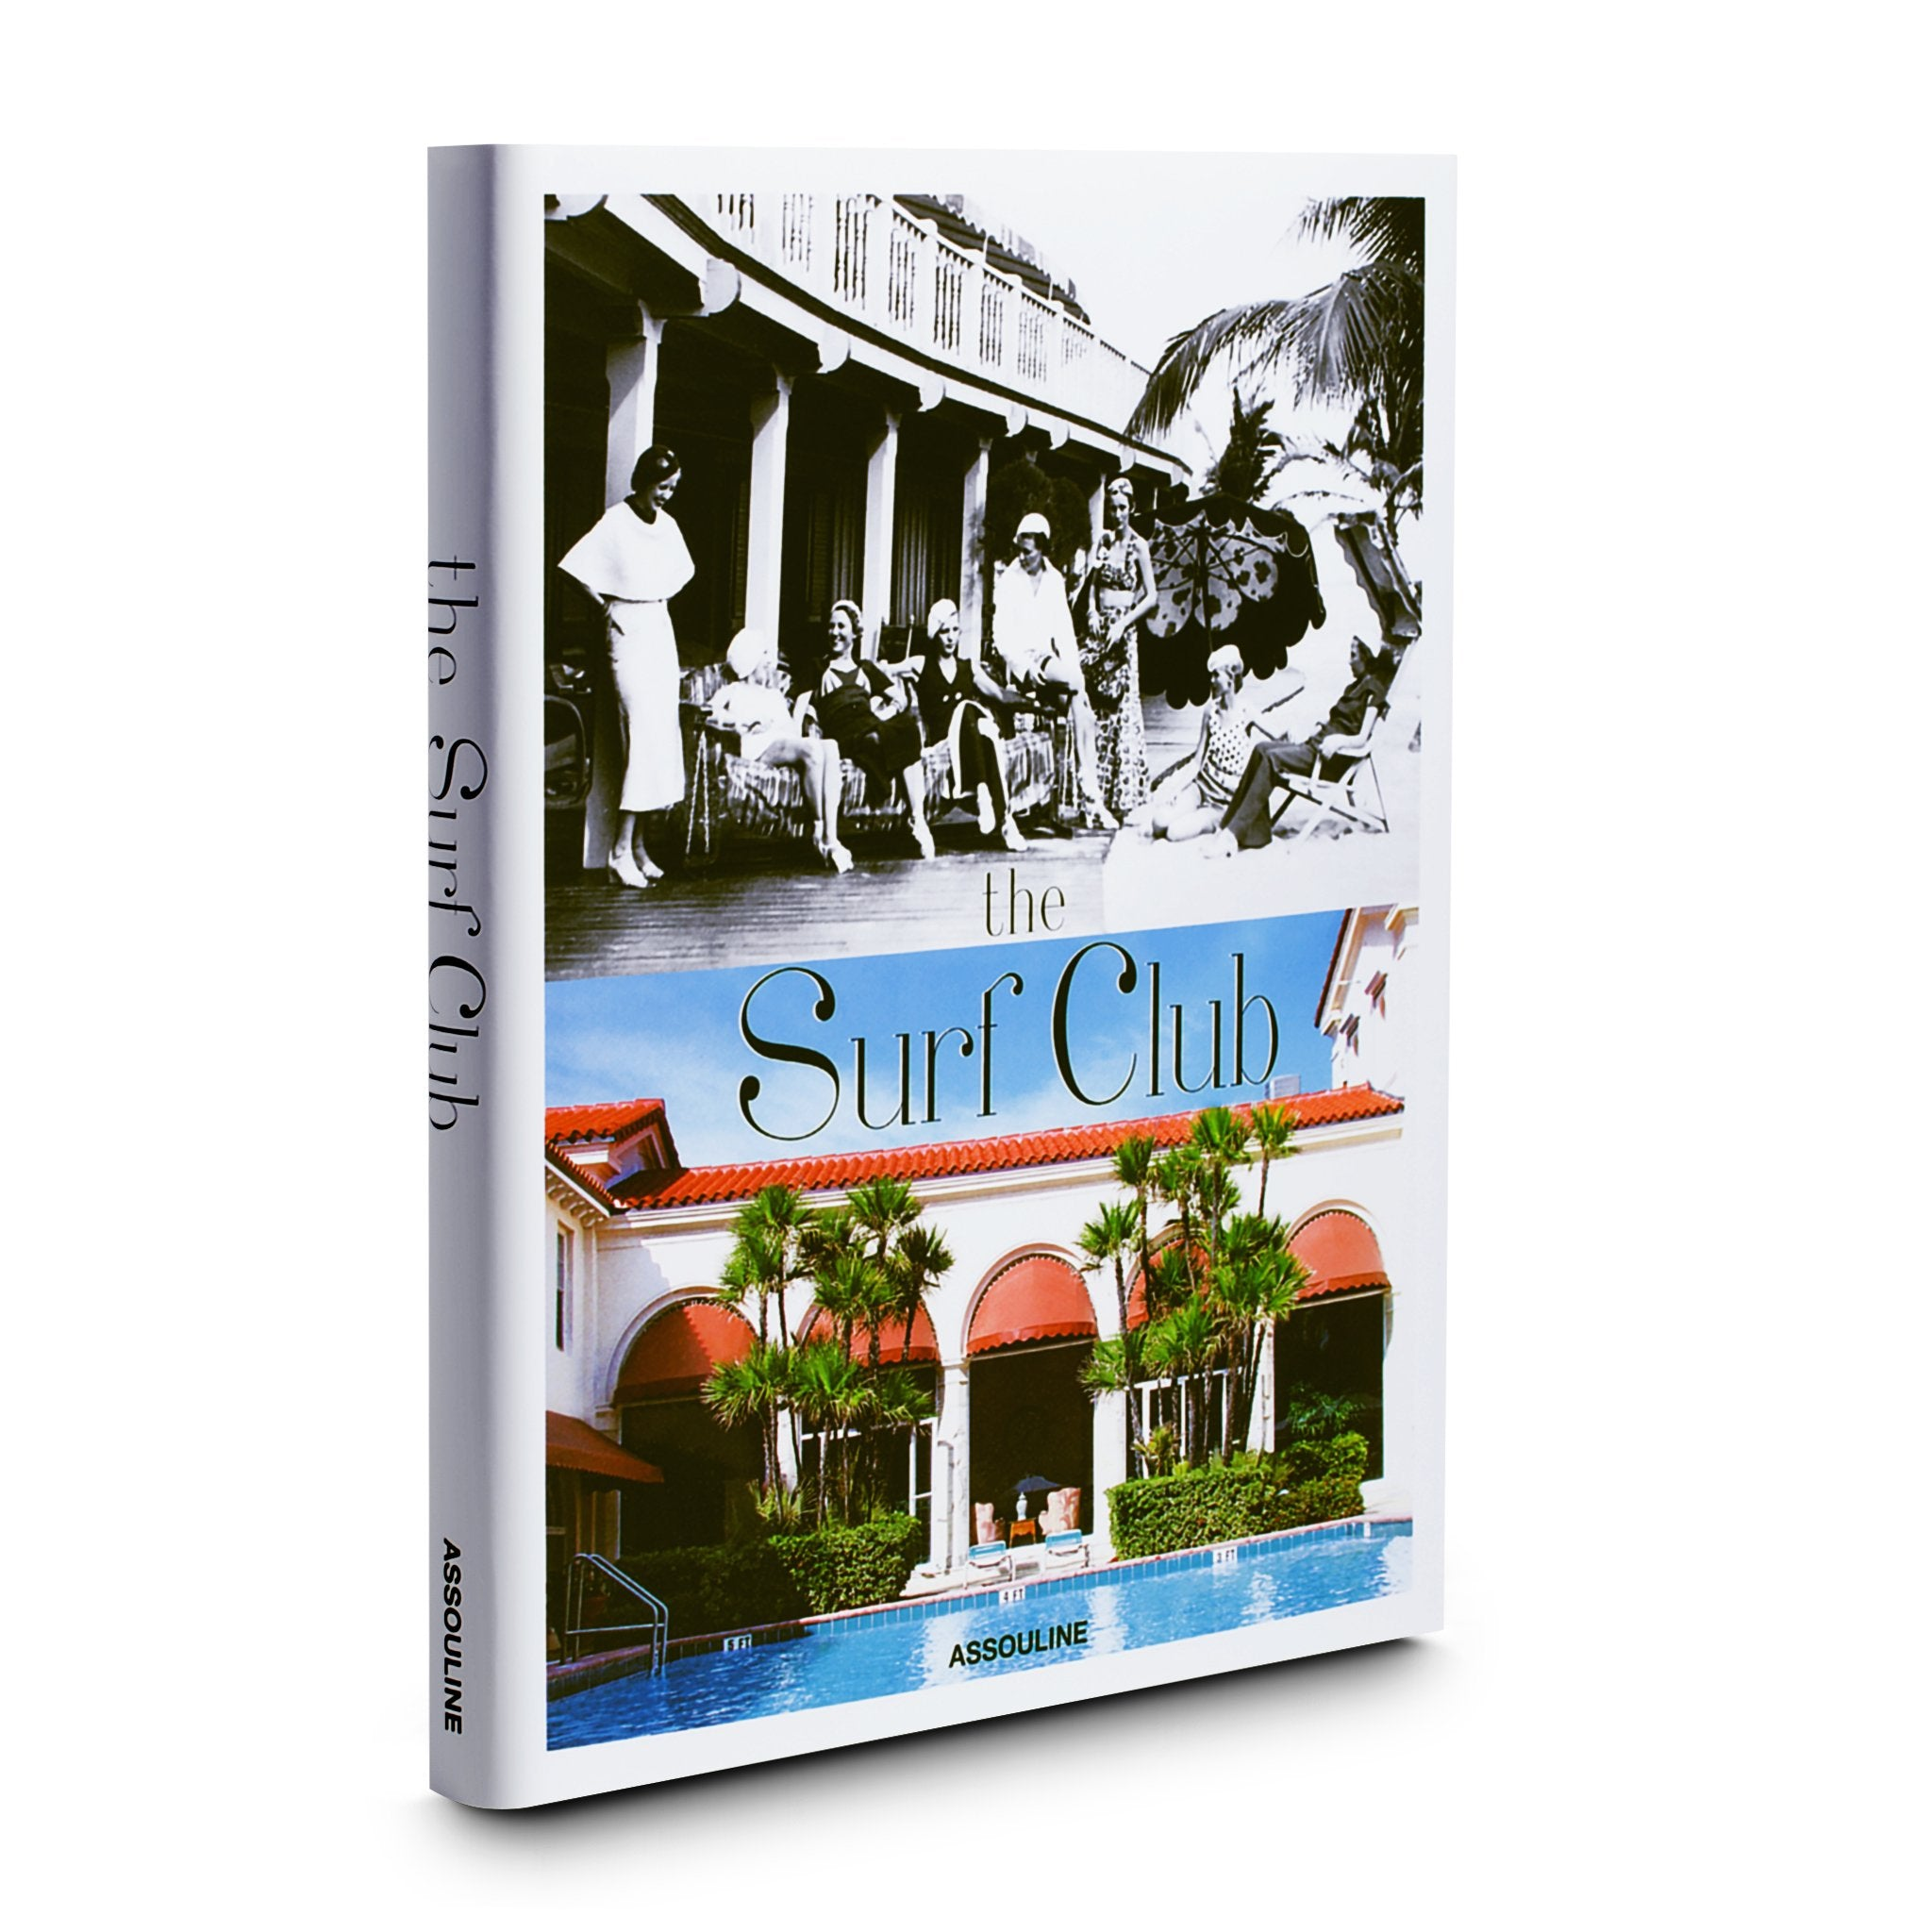 The Surf Club - Assouline